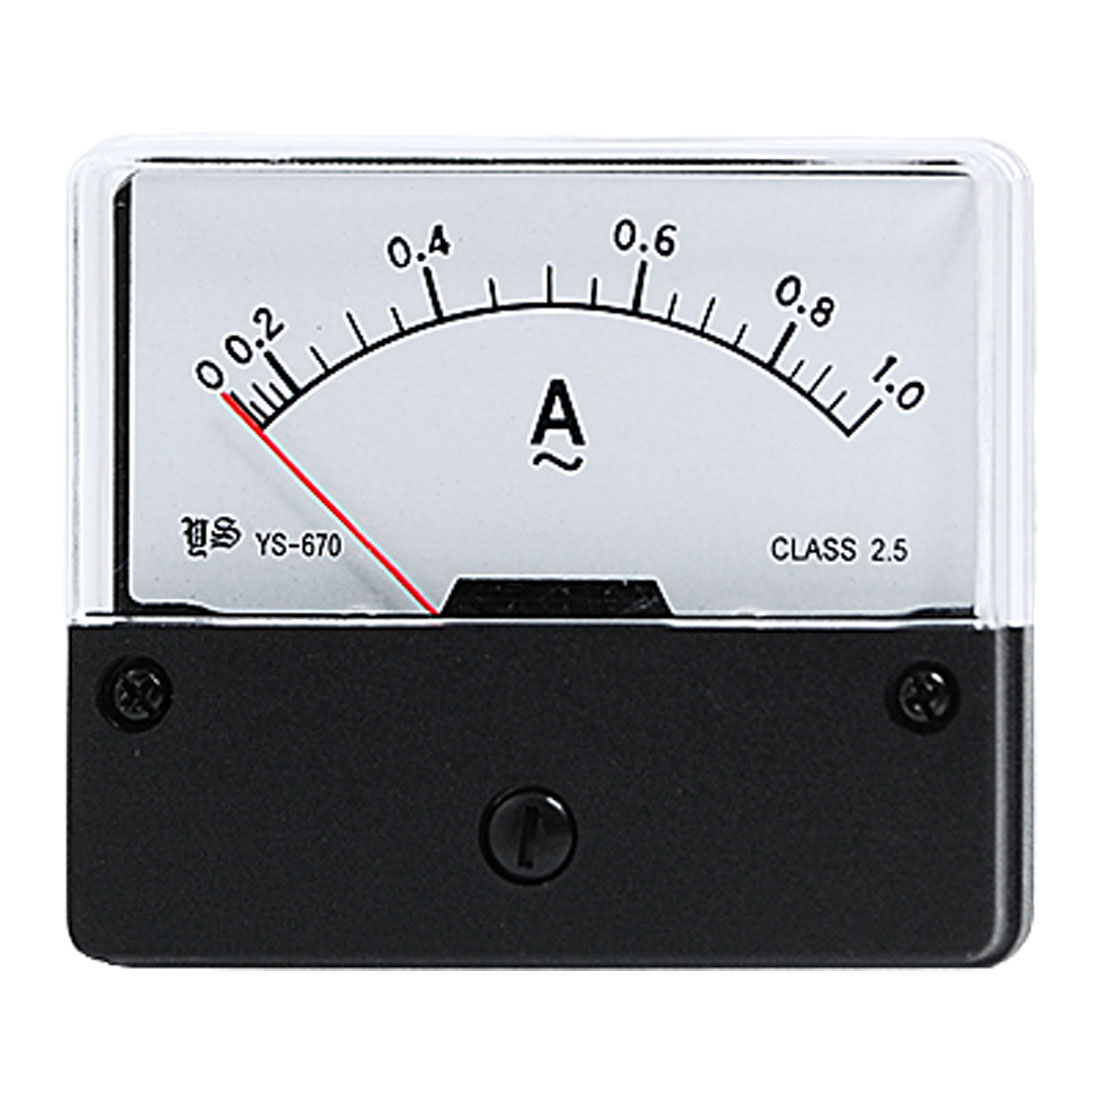 Analogue AC 0-1A Current Rectangle Panel Meter Measuring Tool